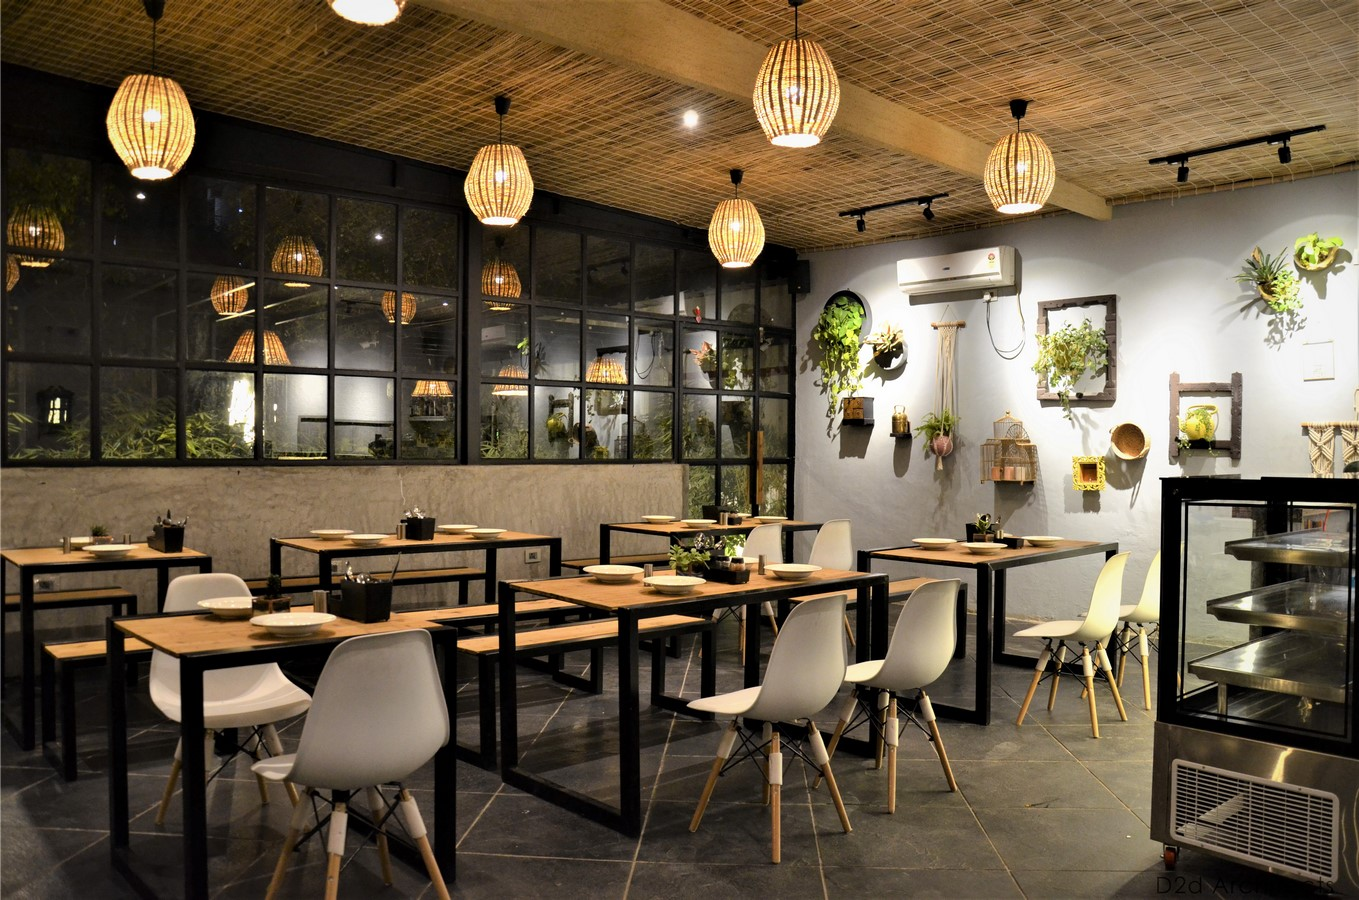 Hush cafe by D2d Architects - Sheet1